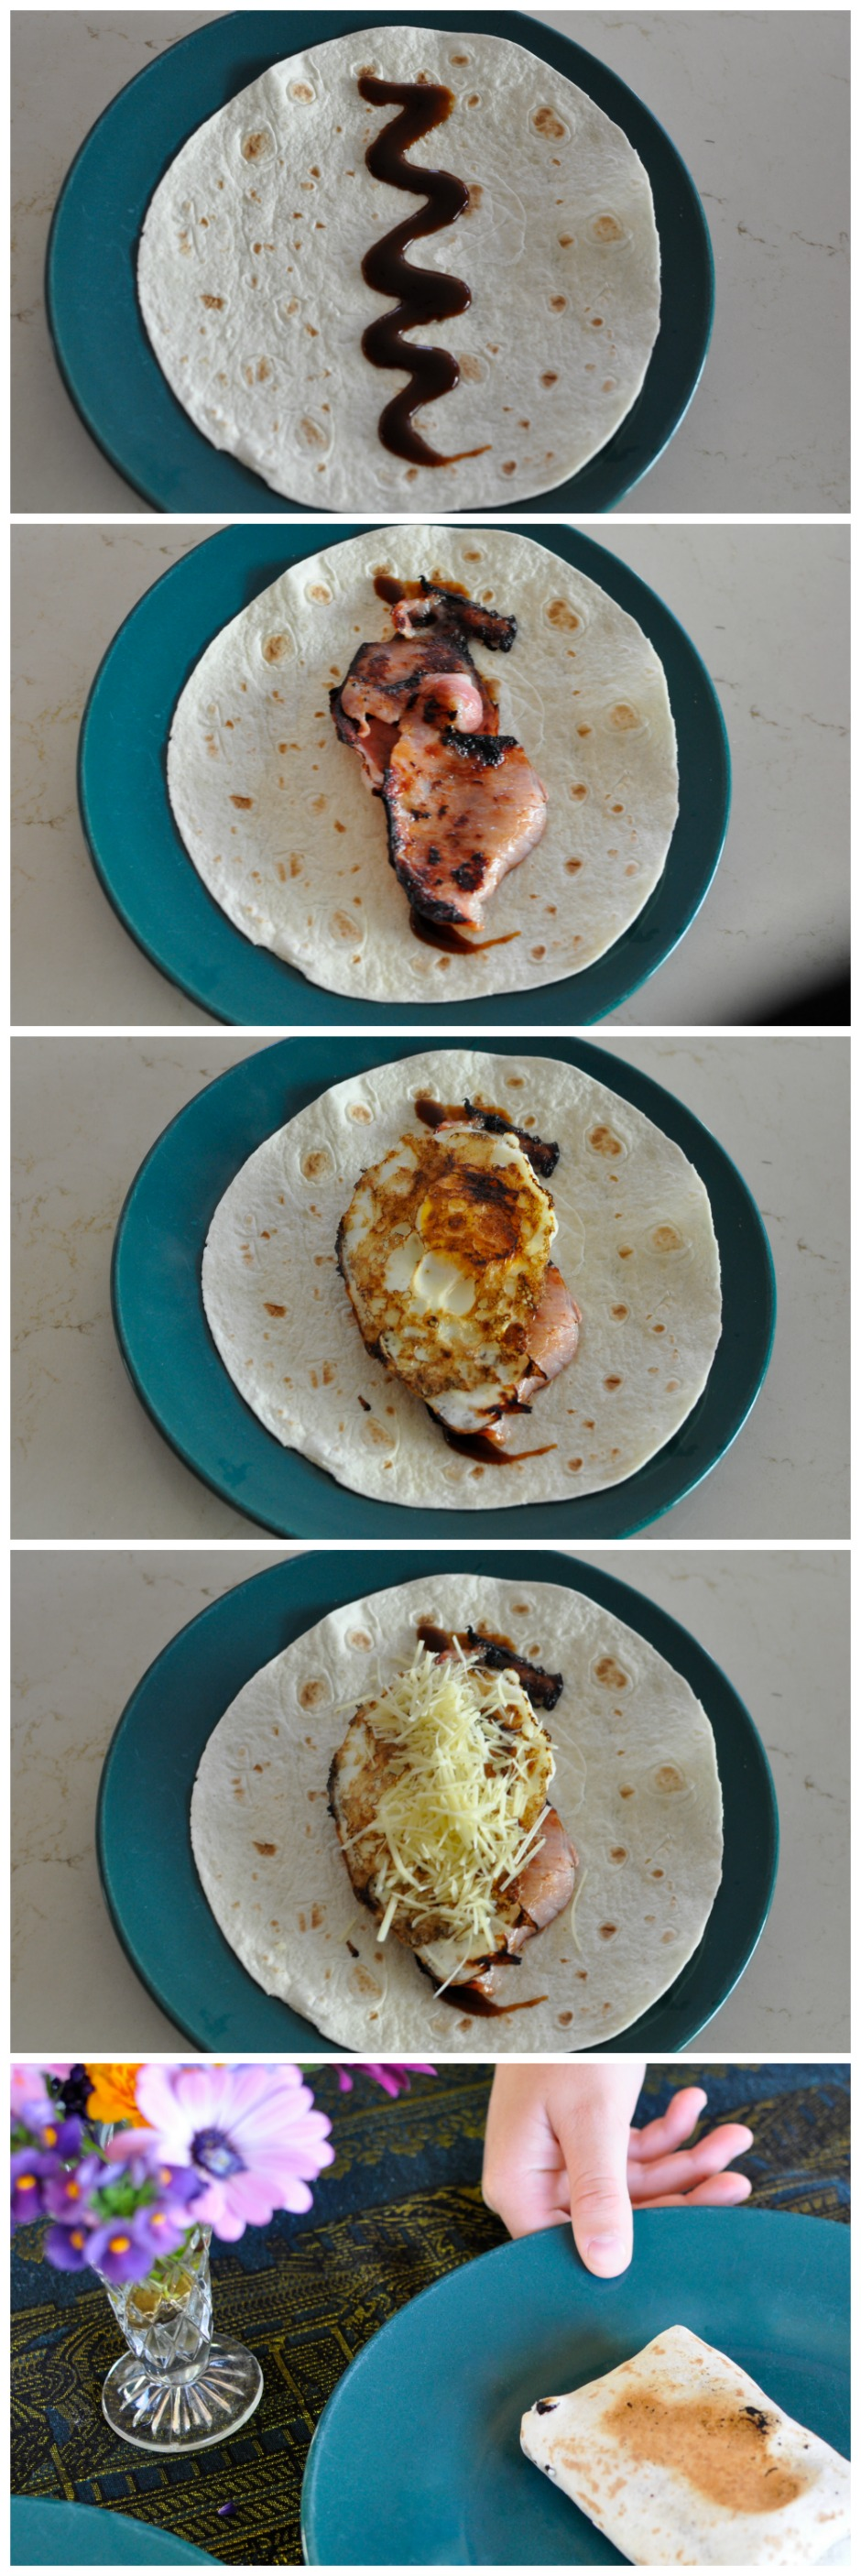 Bacon & Egg Toasted Breakfast Wrap